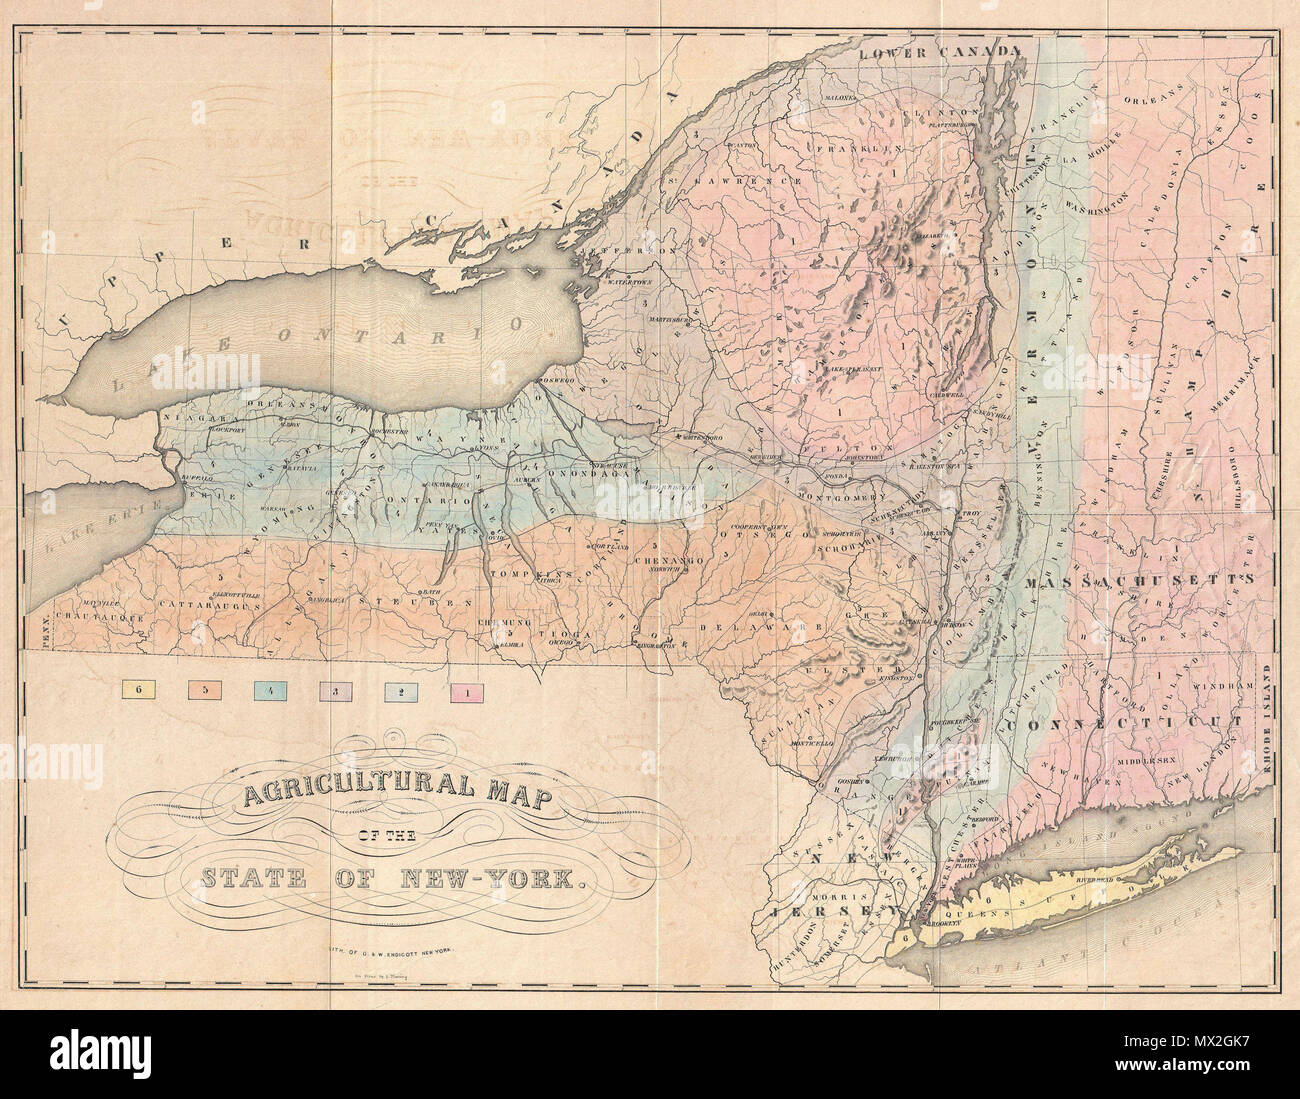 Agricultural Map of the State of New-York. English: This is ... on topographical map of vermont, tourist map of vermont, geologic map of vermont, political map of vermont,